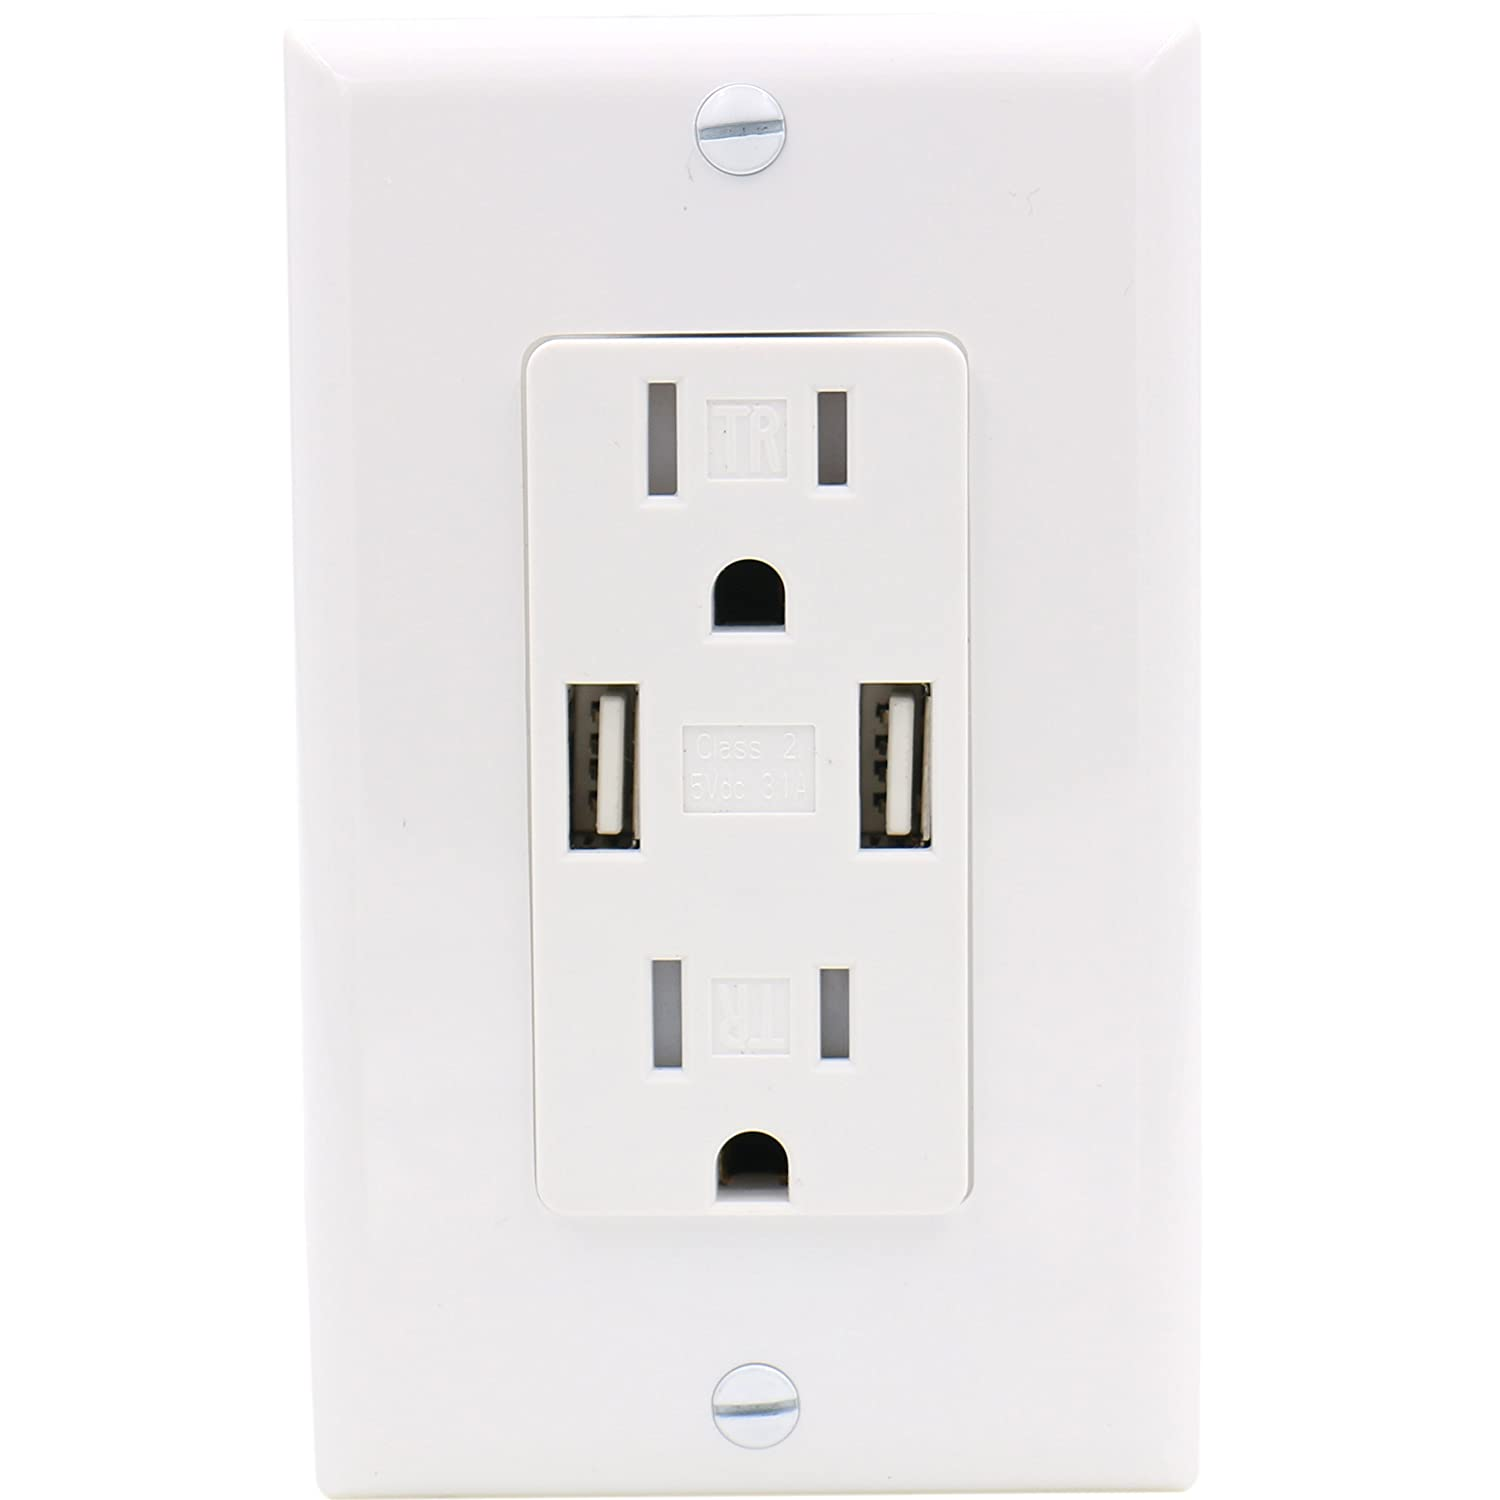 3.1A 5VDC Baomain USB Charger Outlet//Duplex Receptacle 15A 120VAC White Tamper Resistant Outlet with Wall Plate UL /& CUL Listed